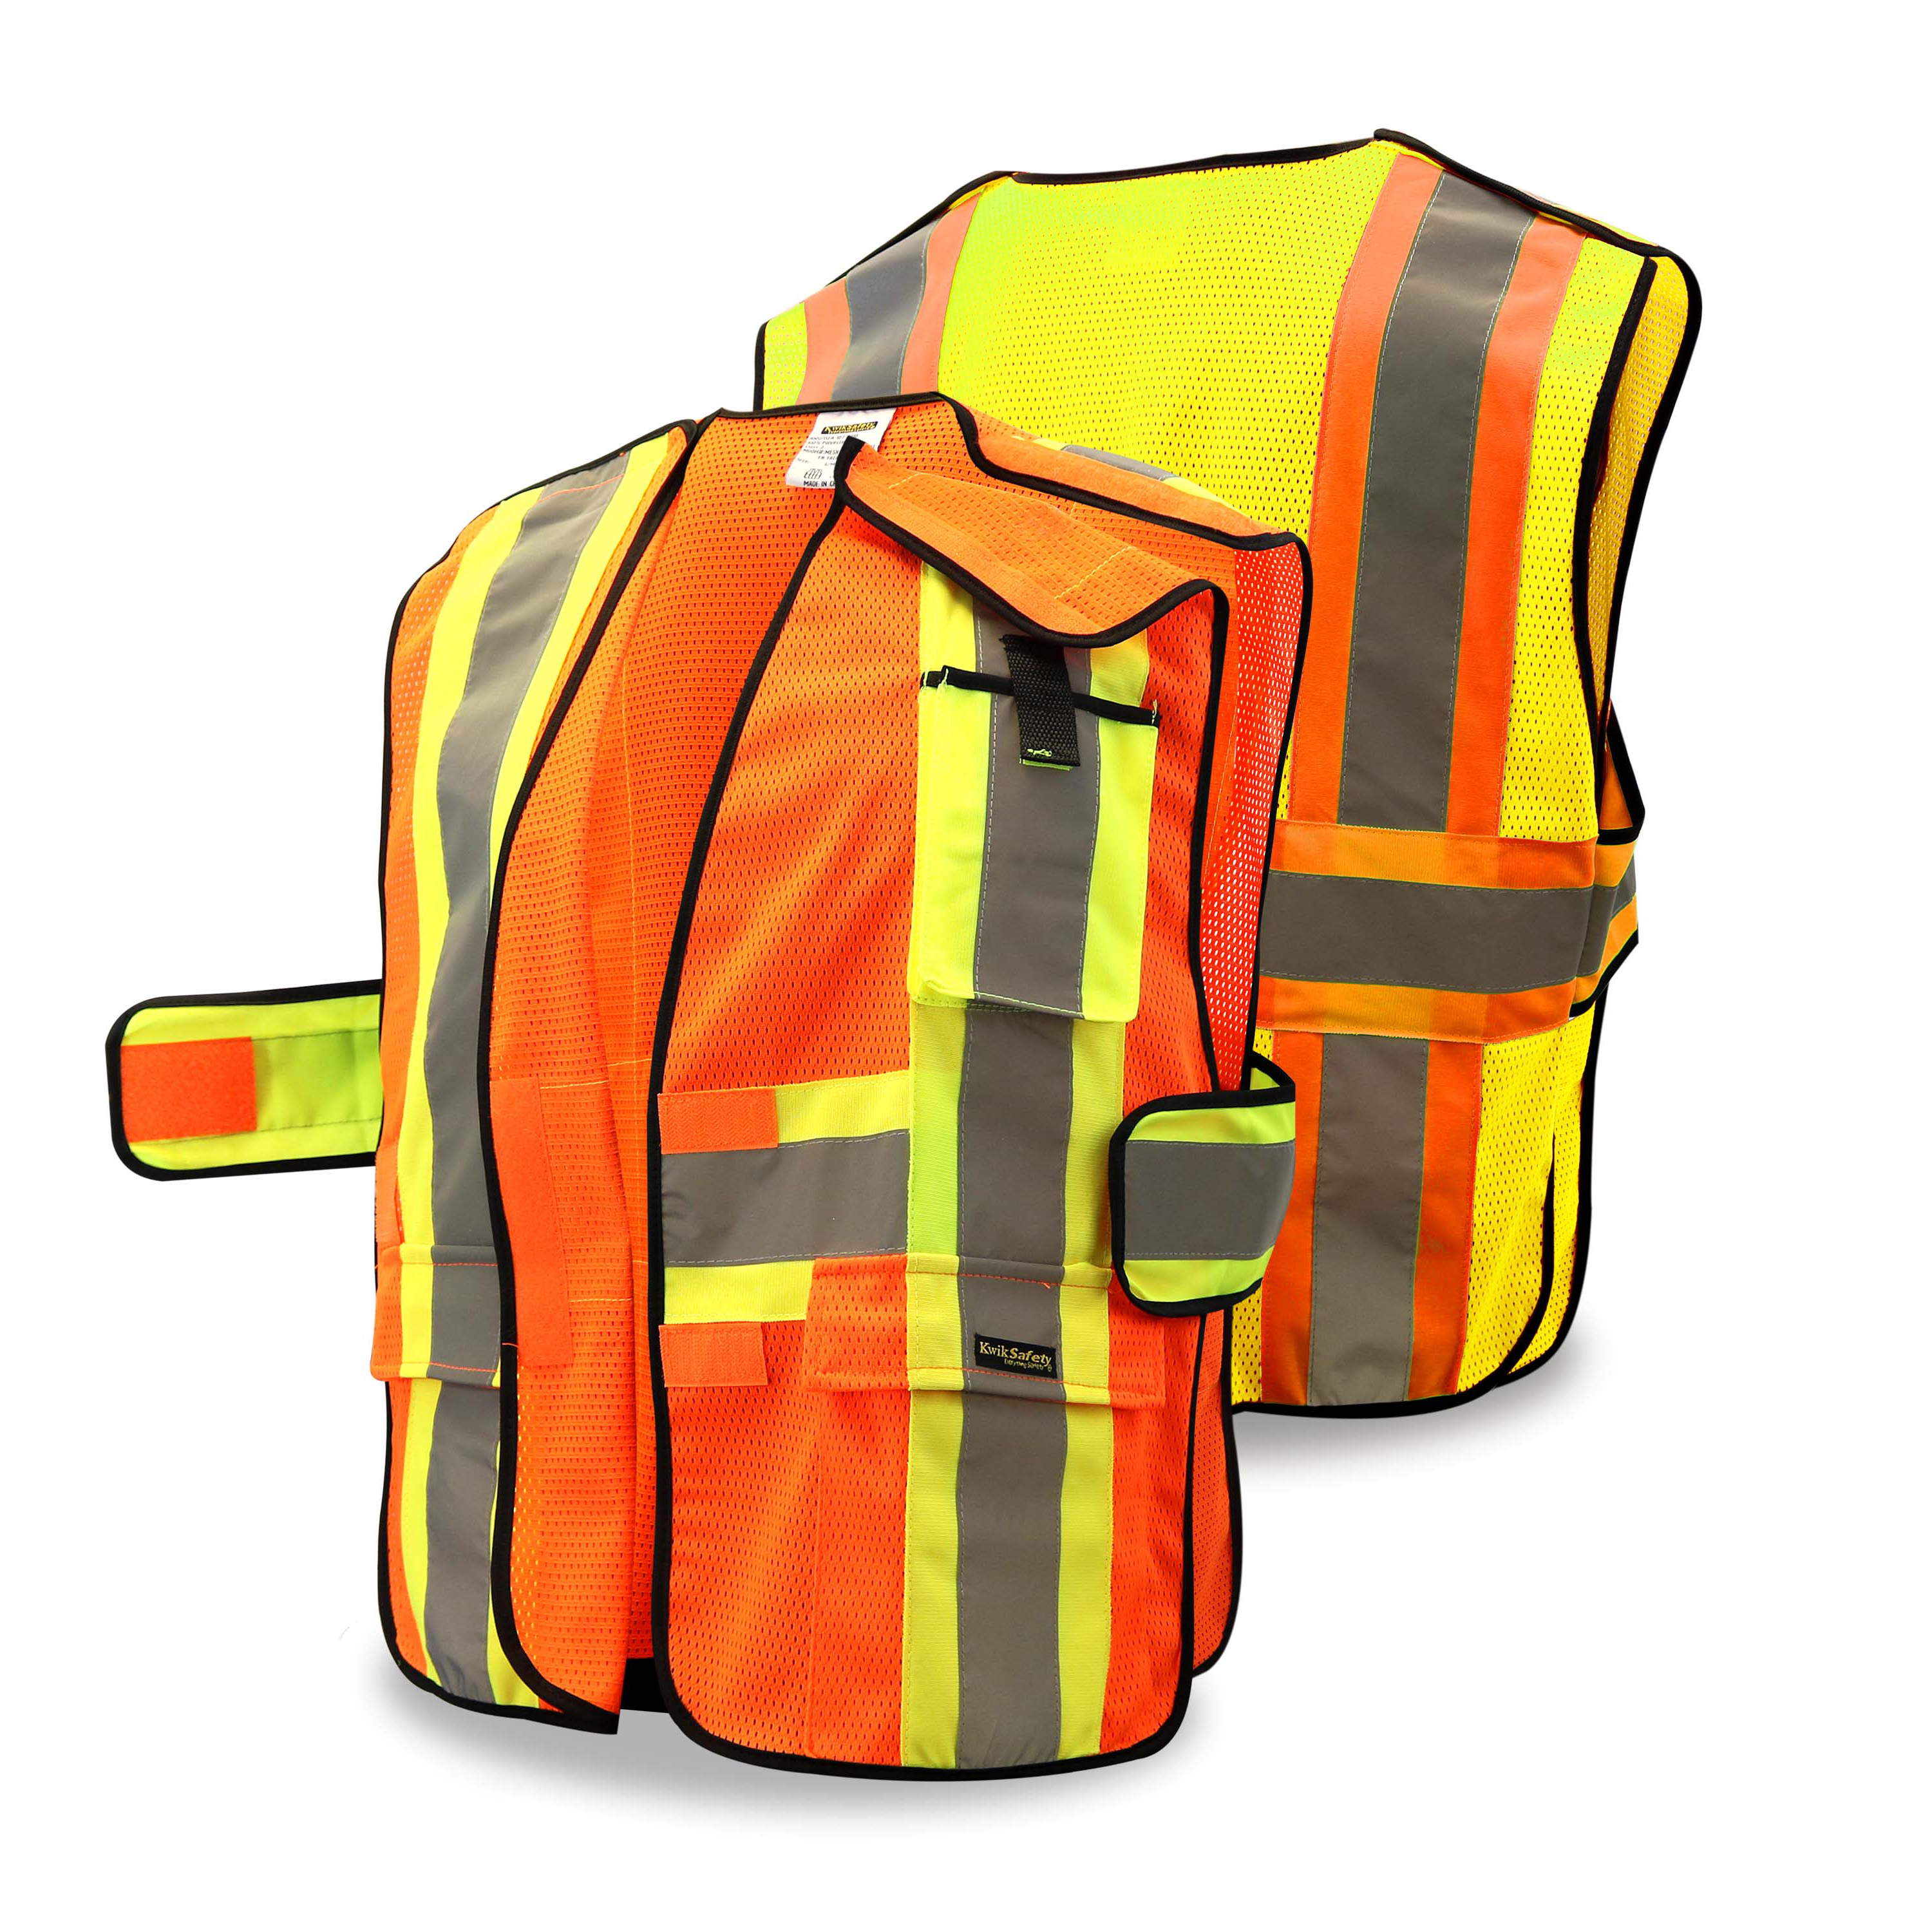 KwikSafety CAPITAL Hi Vis Reflective ANSI PPE Breakaway Class 2 Safety Vest Size: S/M, Color: Yellow